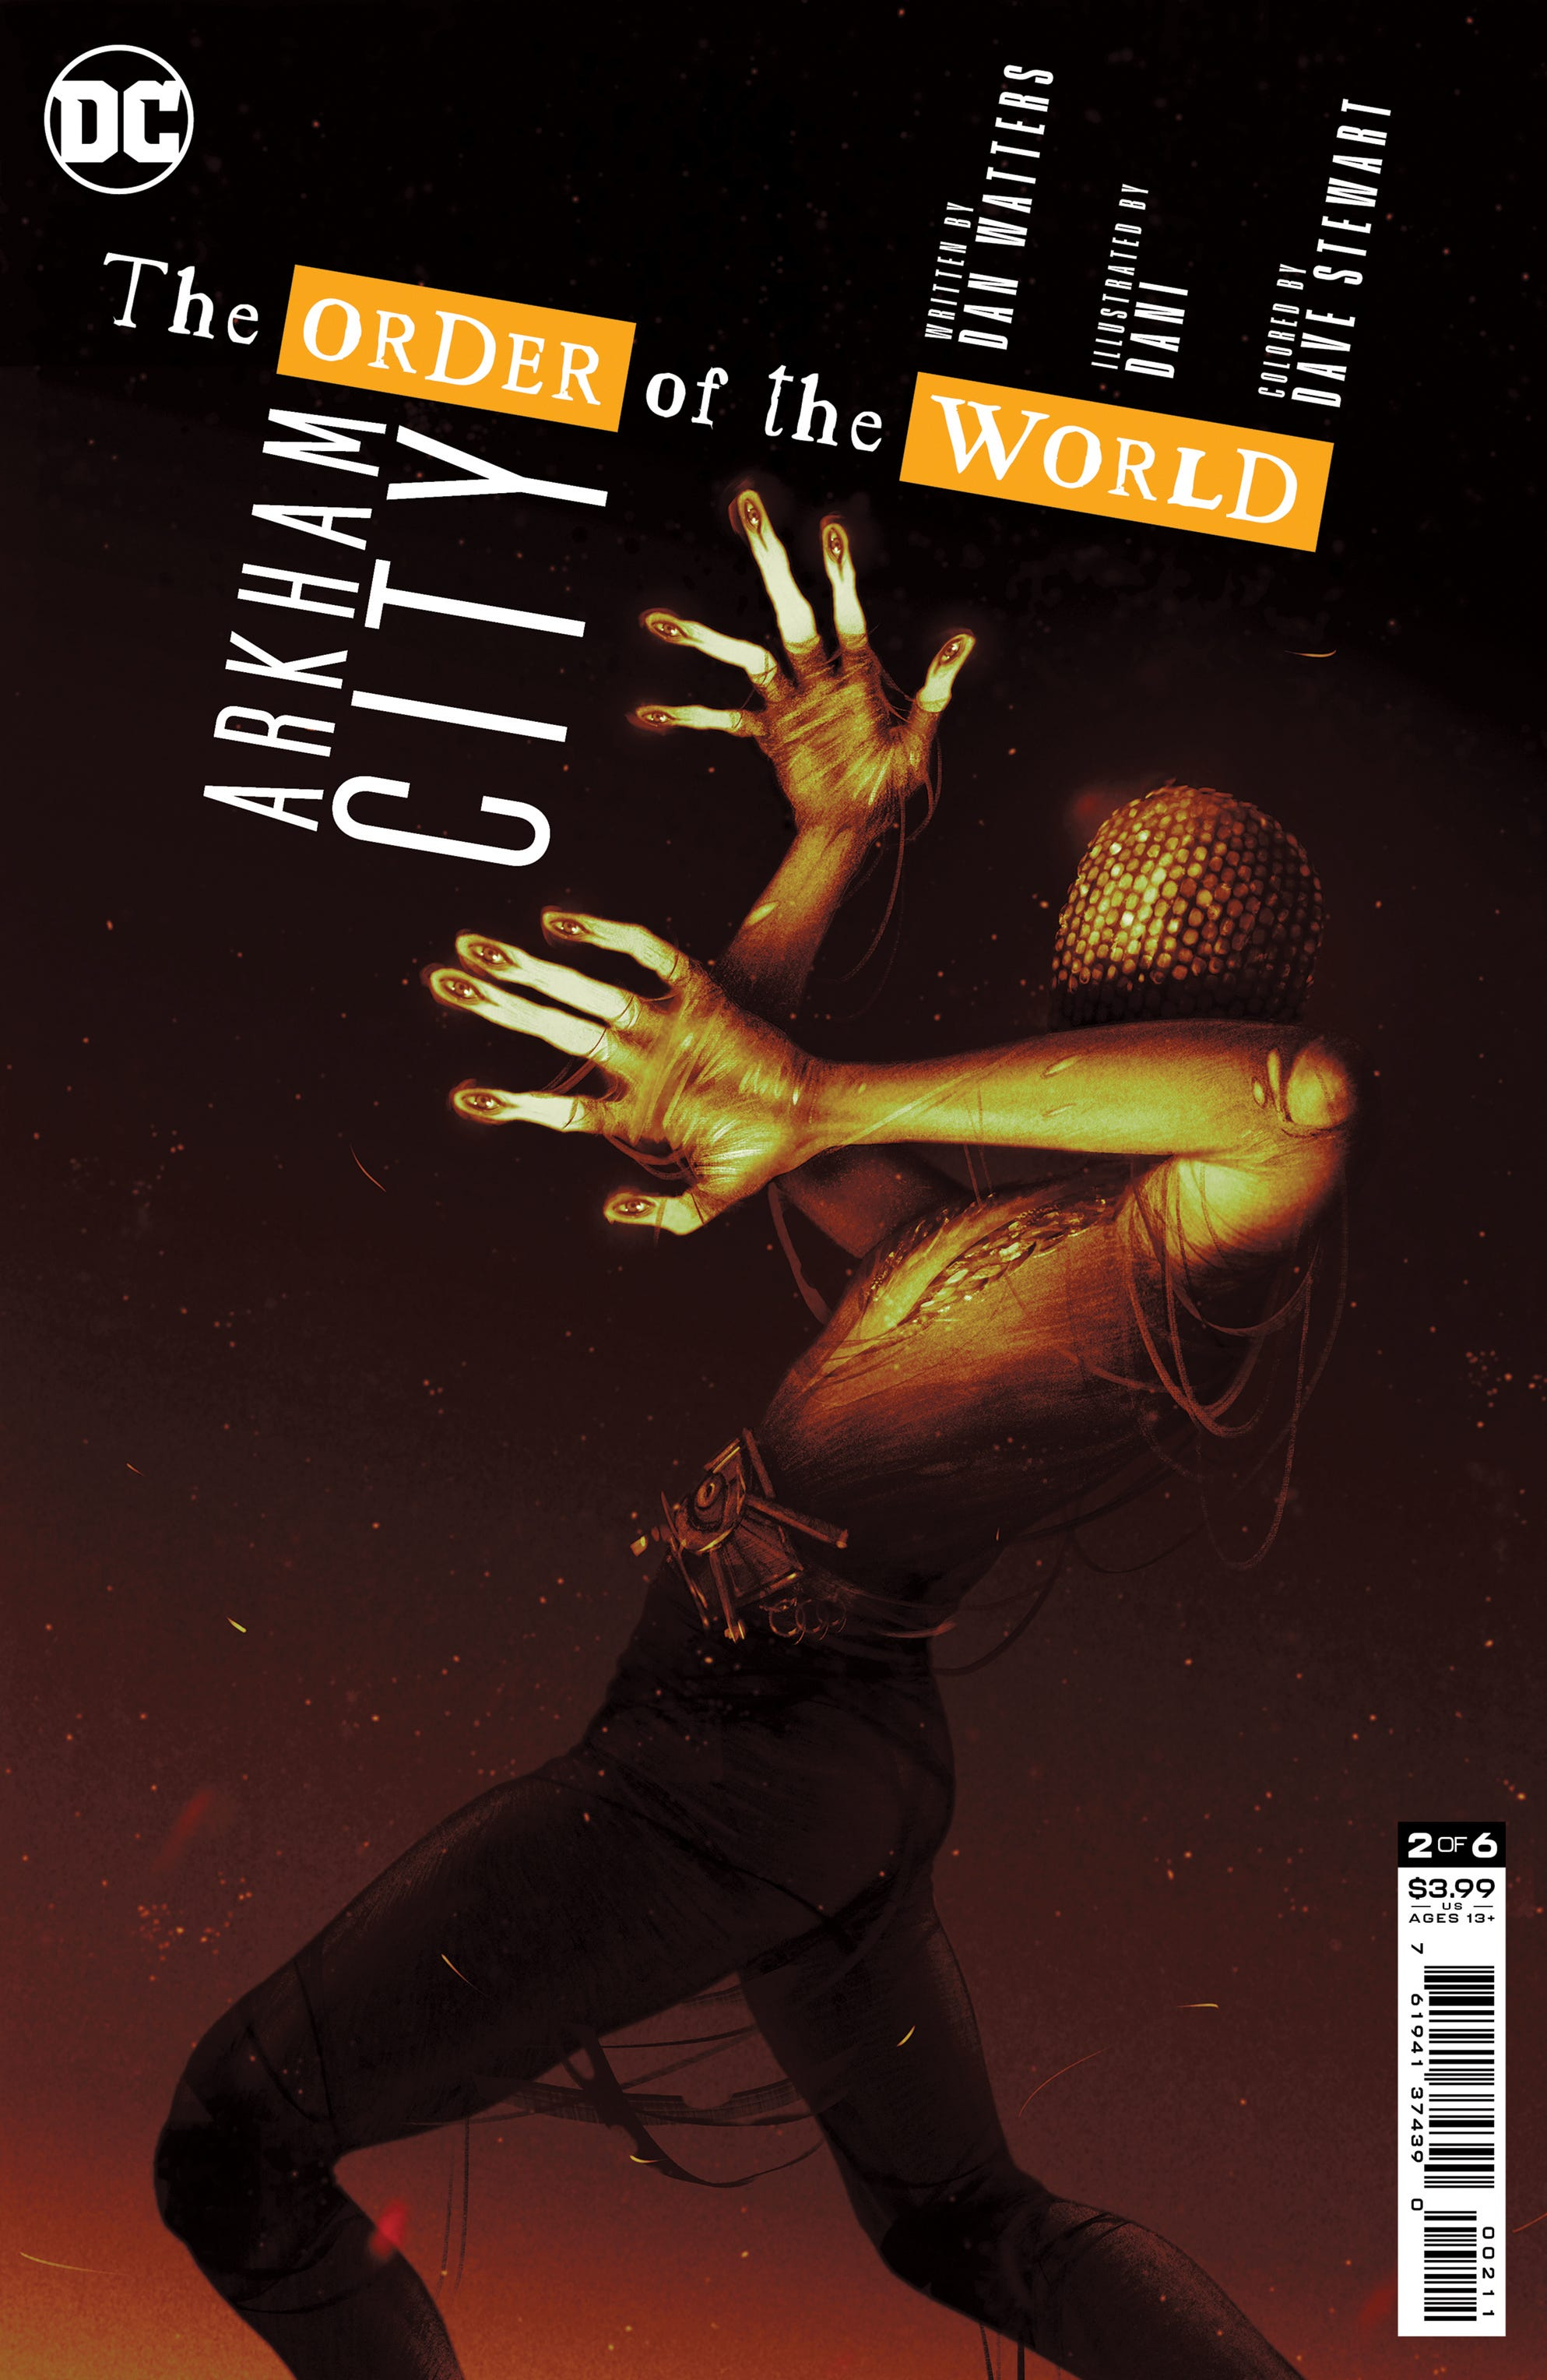 Arkham City the Order of the World #2 (of 6) (Cover A - Sam Wolfe Connelly)